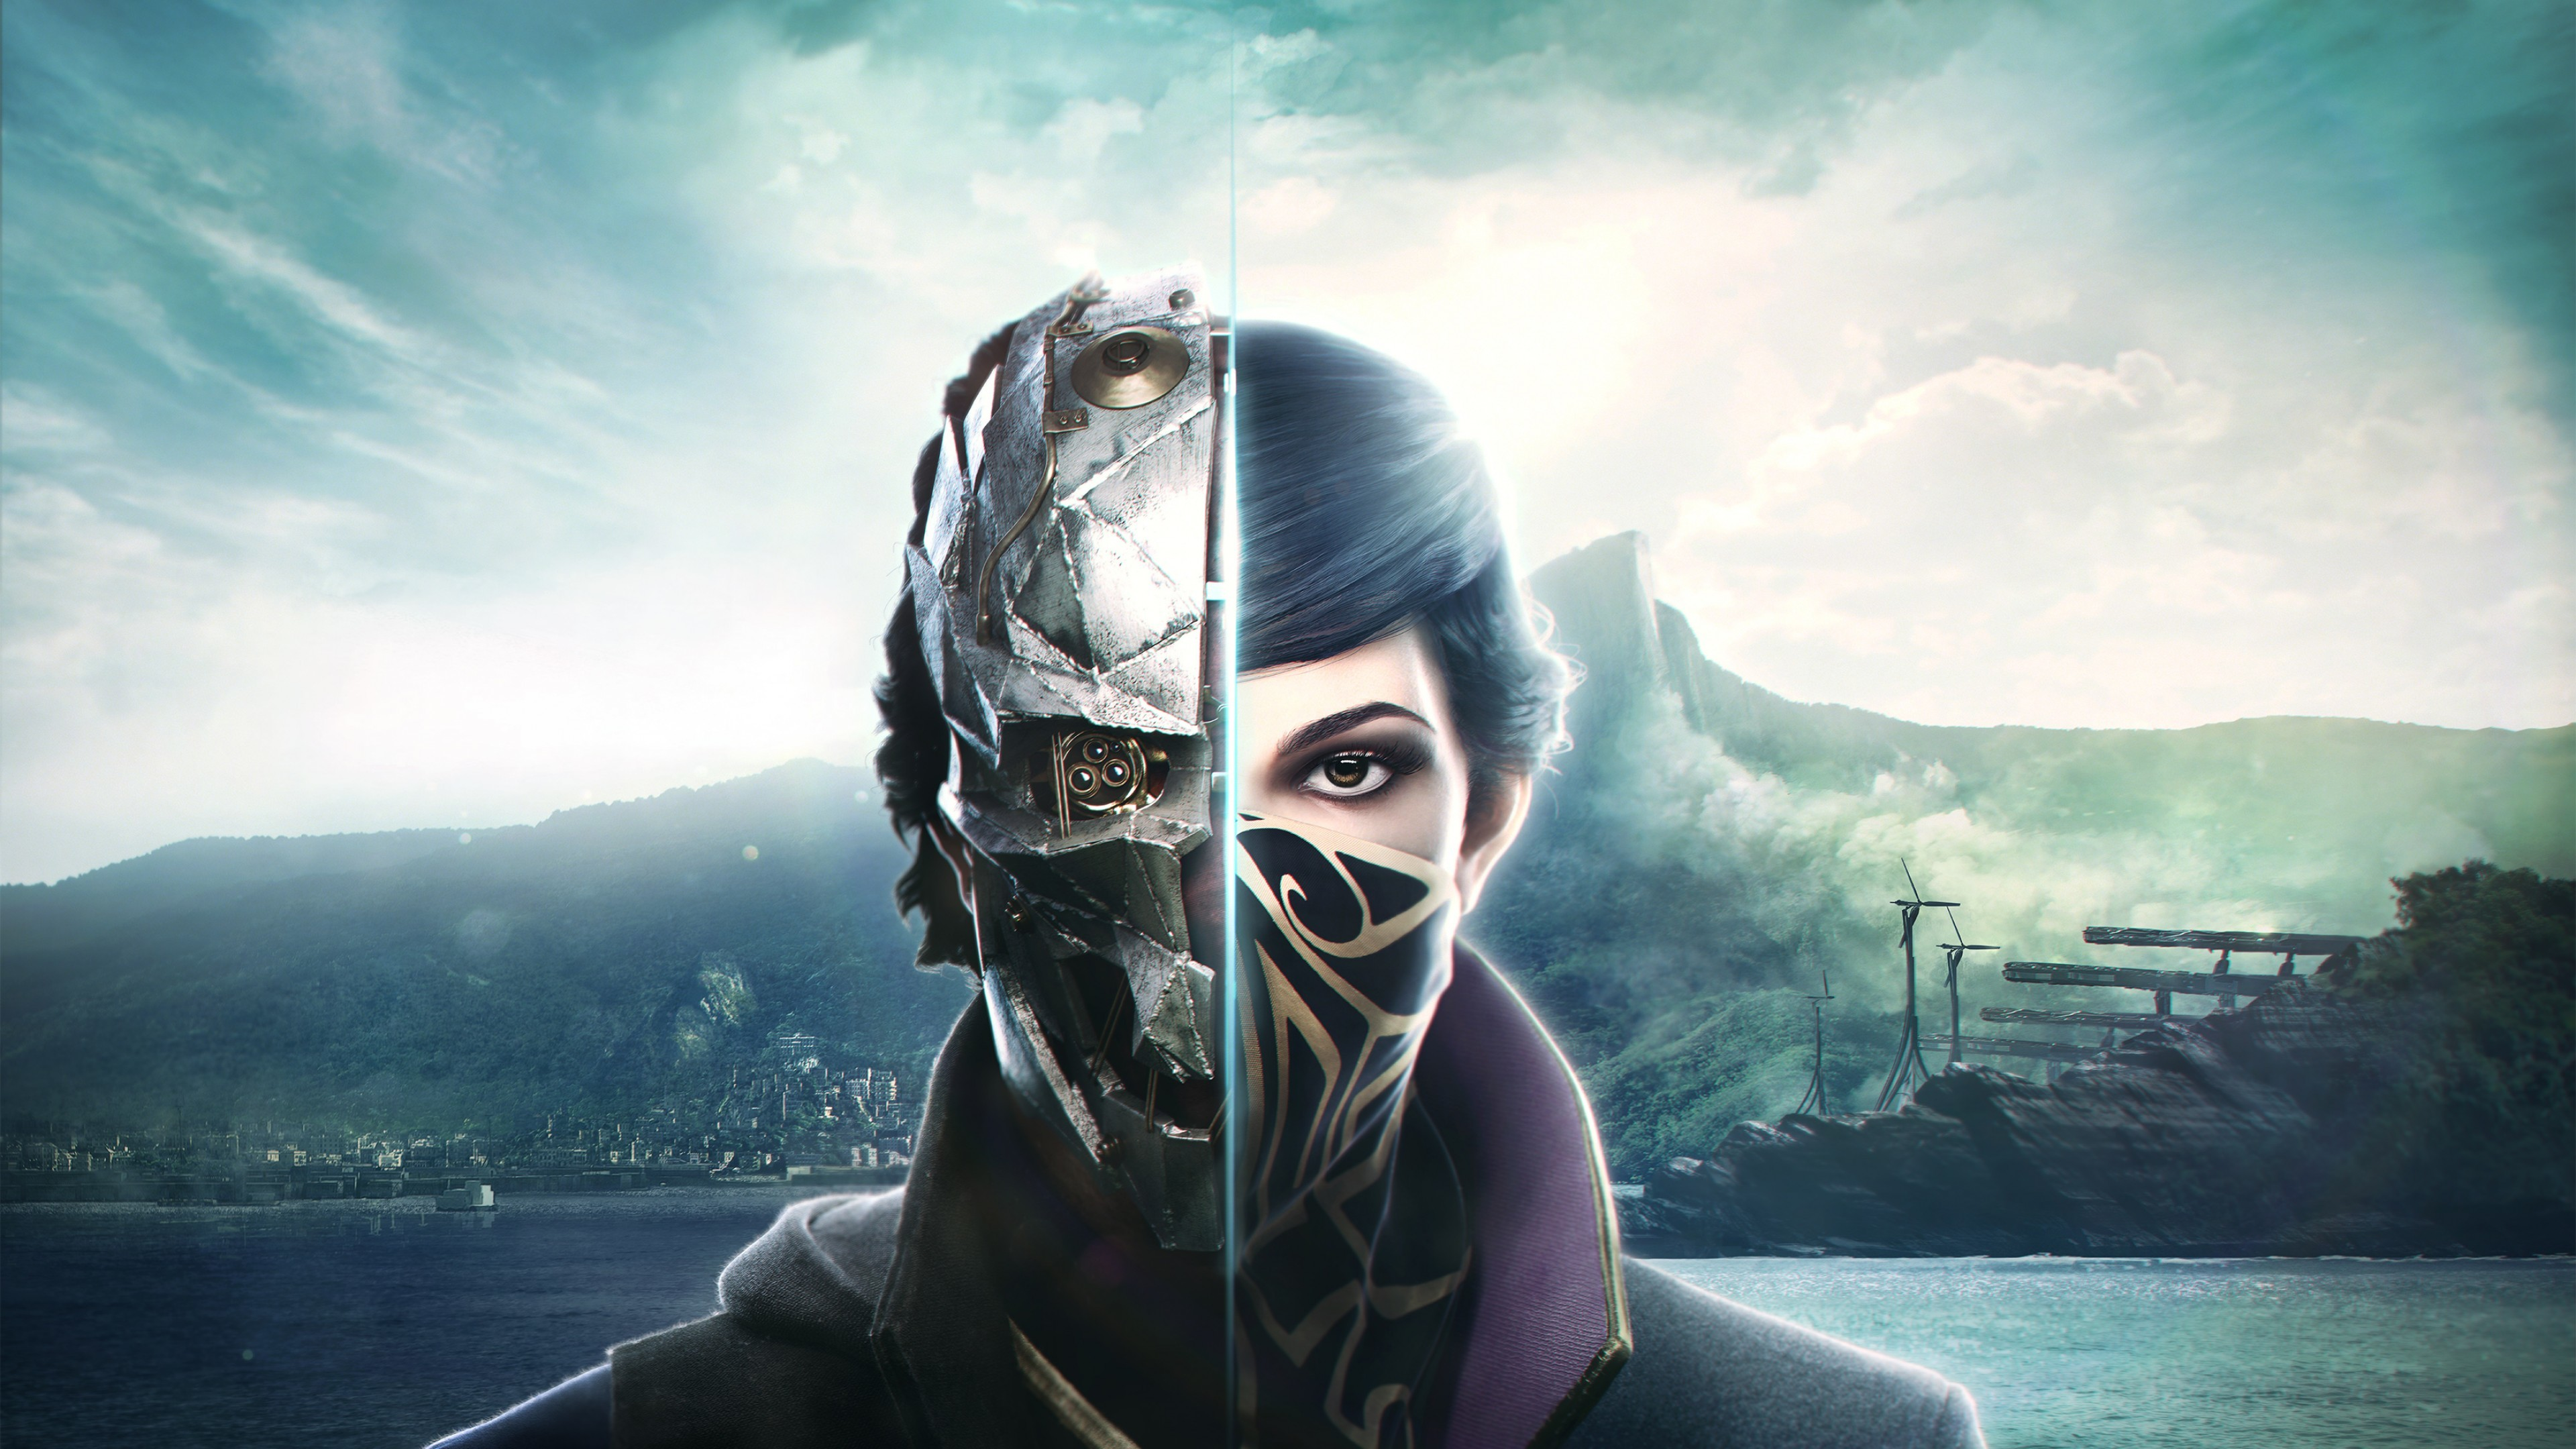 Dishonored 2 Wallpapers Wallpapertag